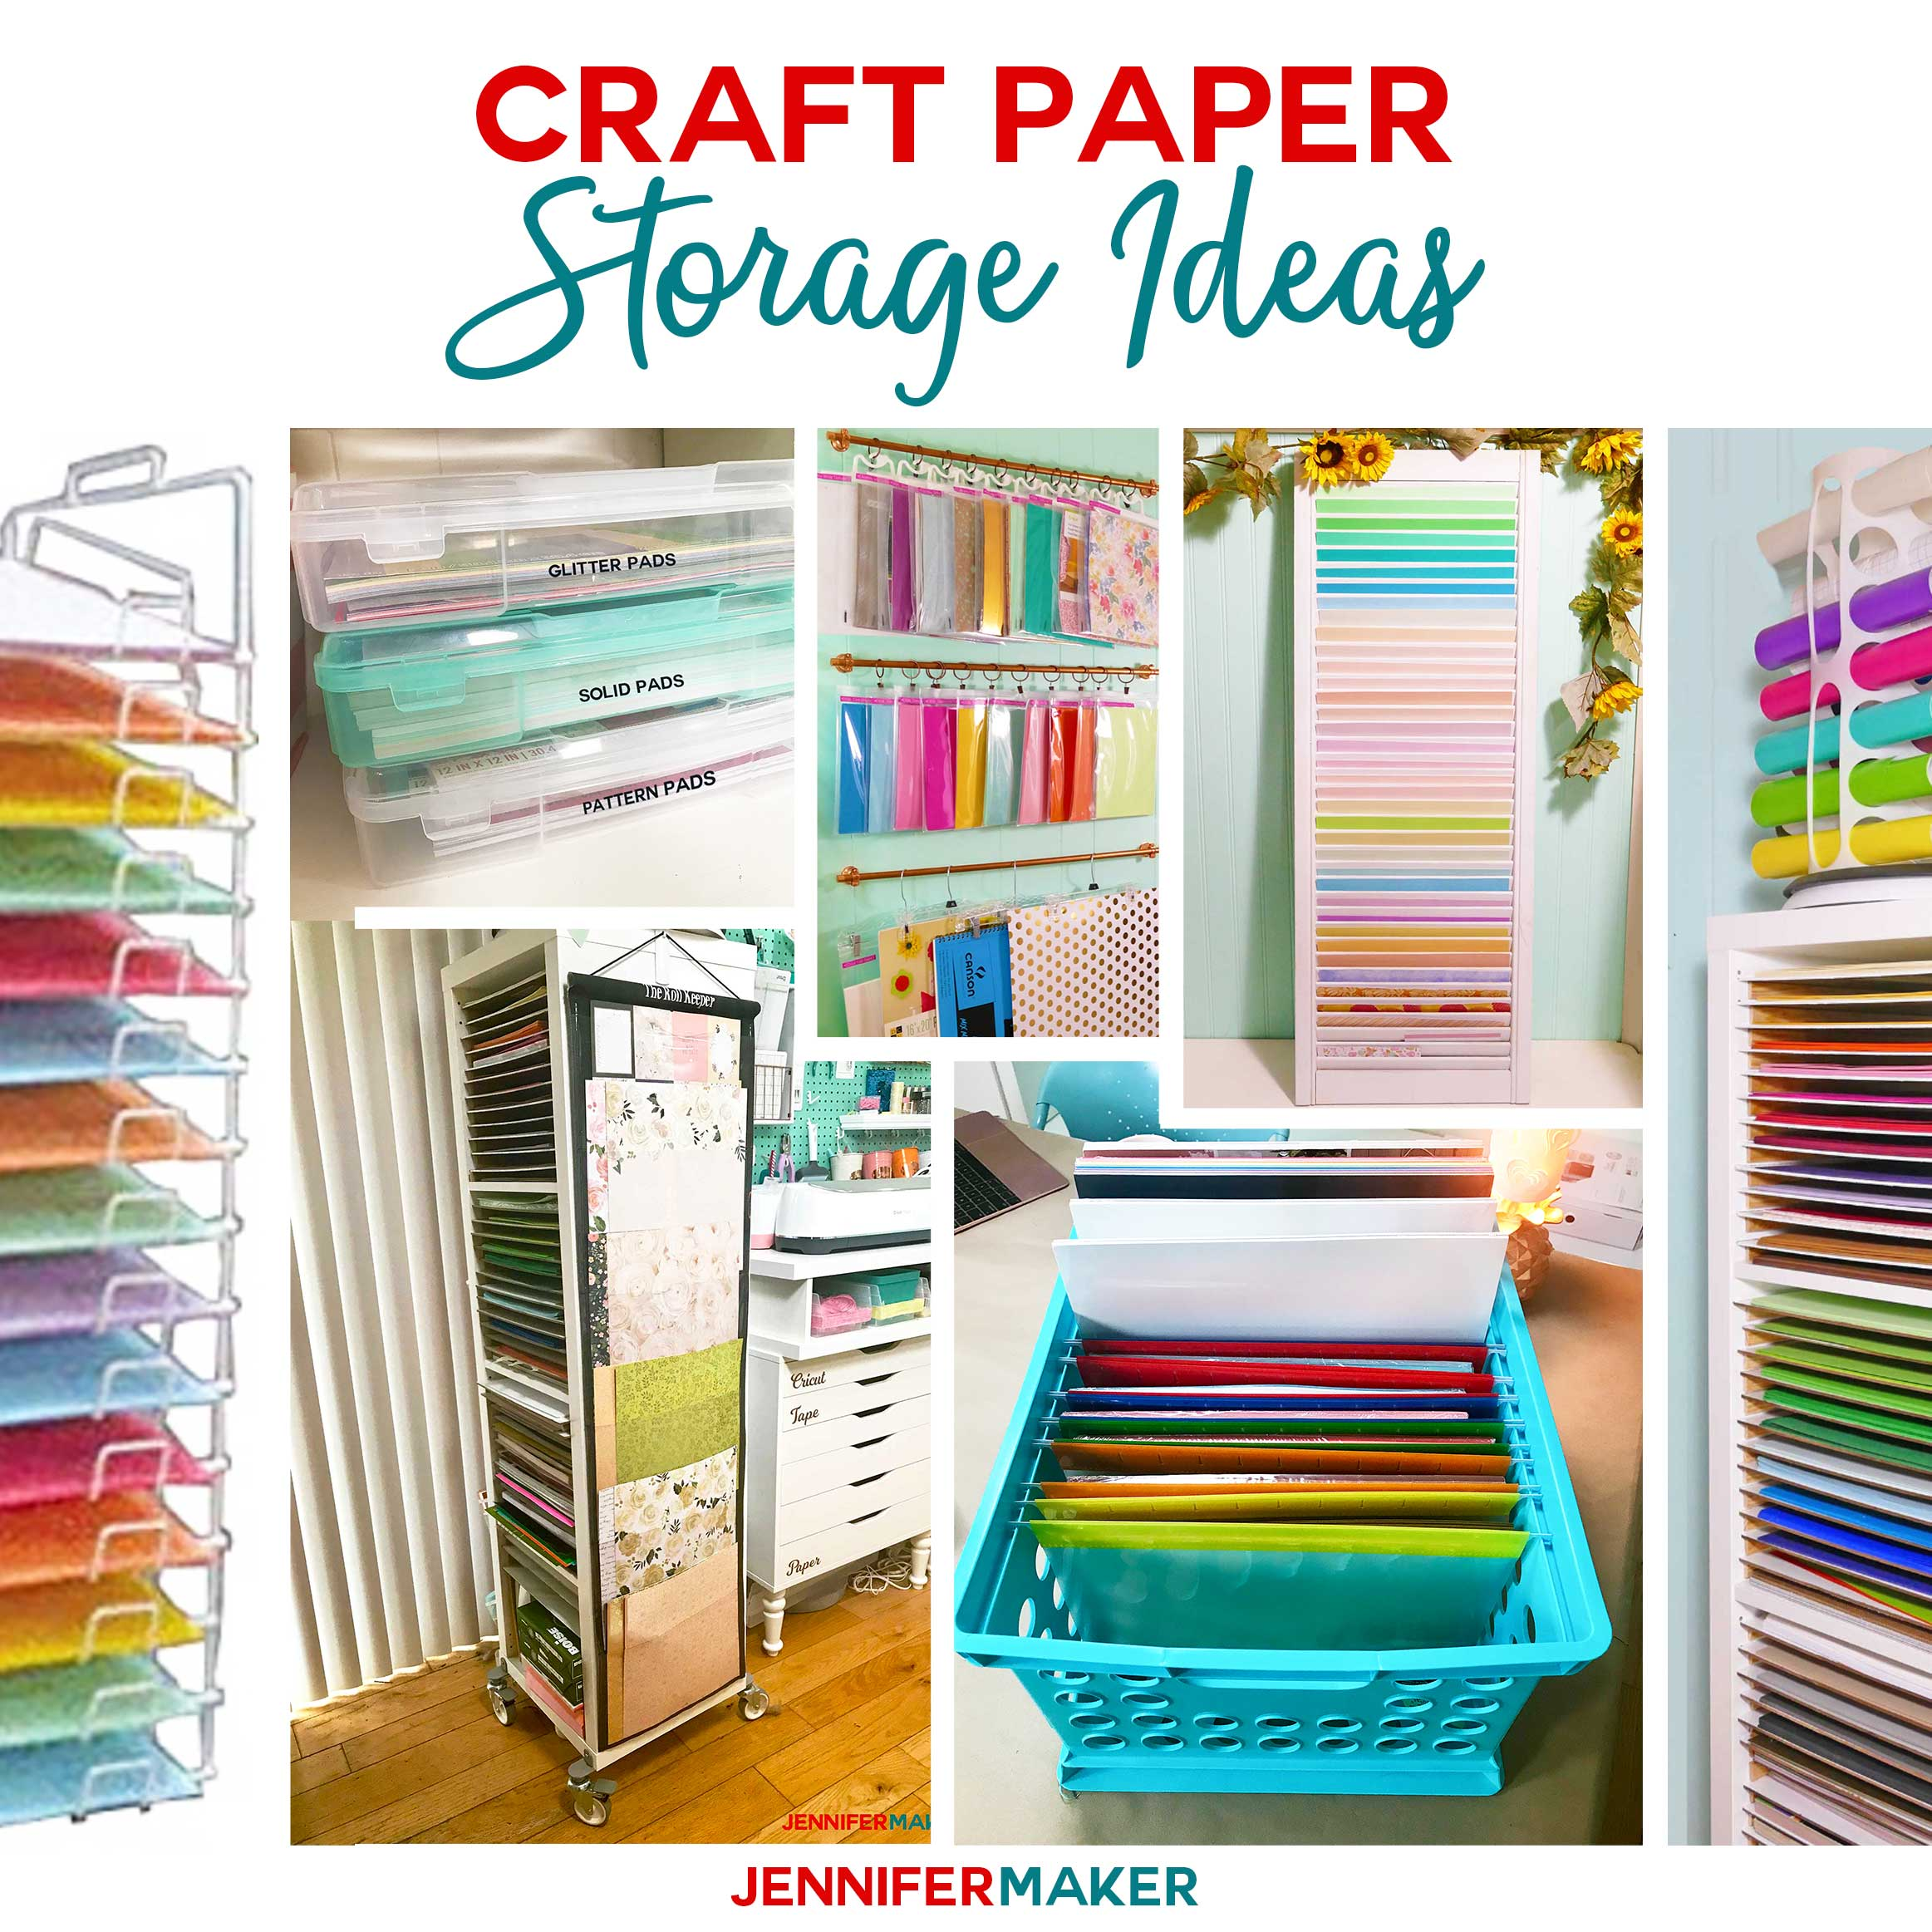 Craft Paper Storage Ideas: The Best Organization Solutions! - Jennifer Maker